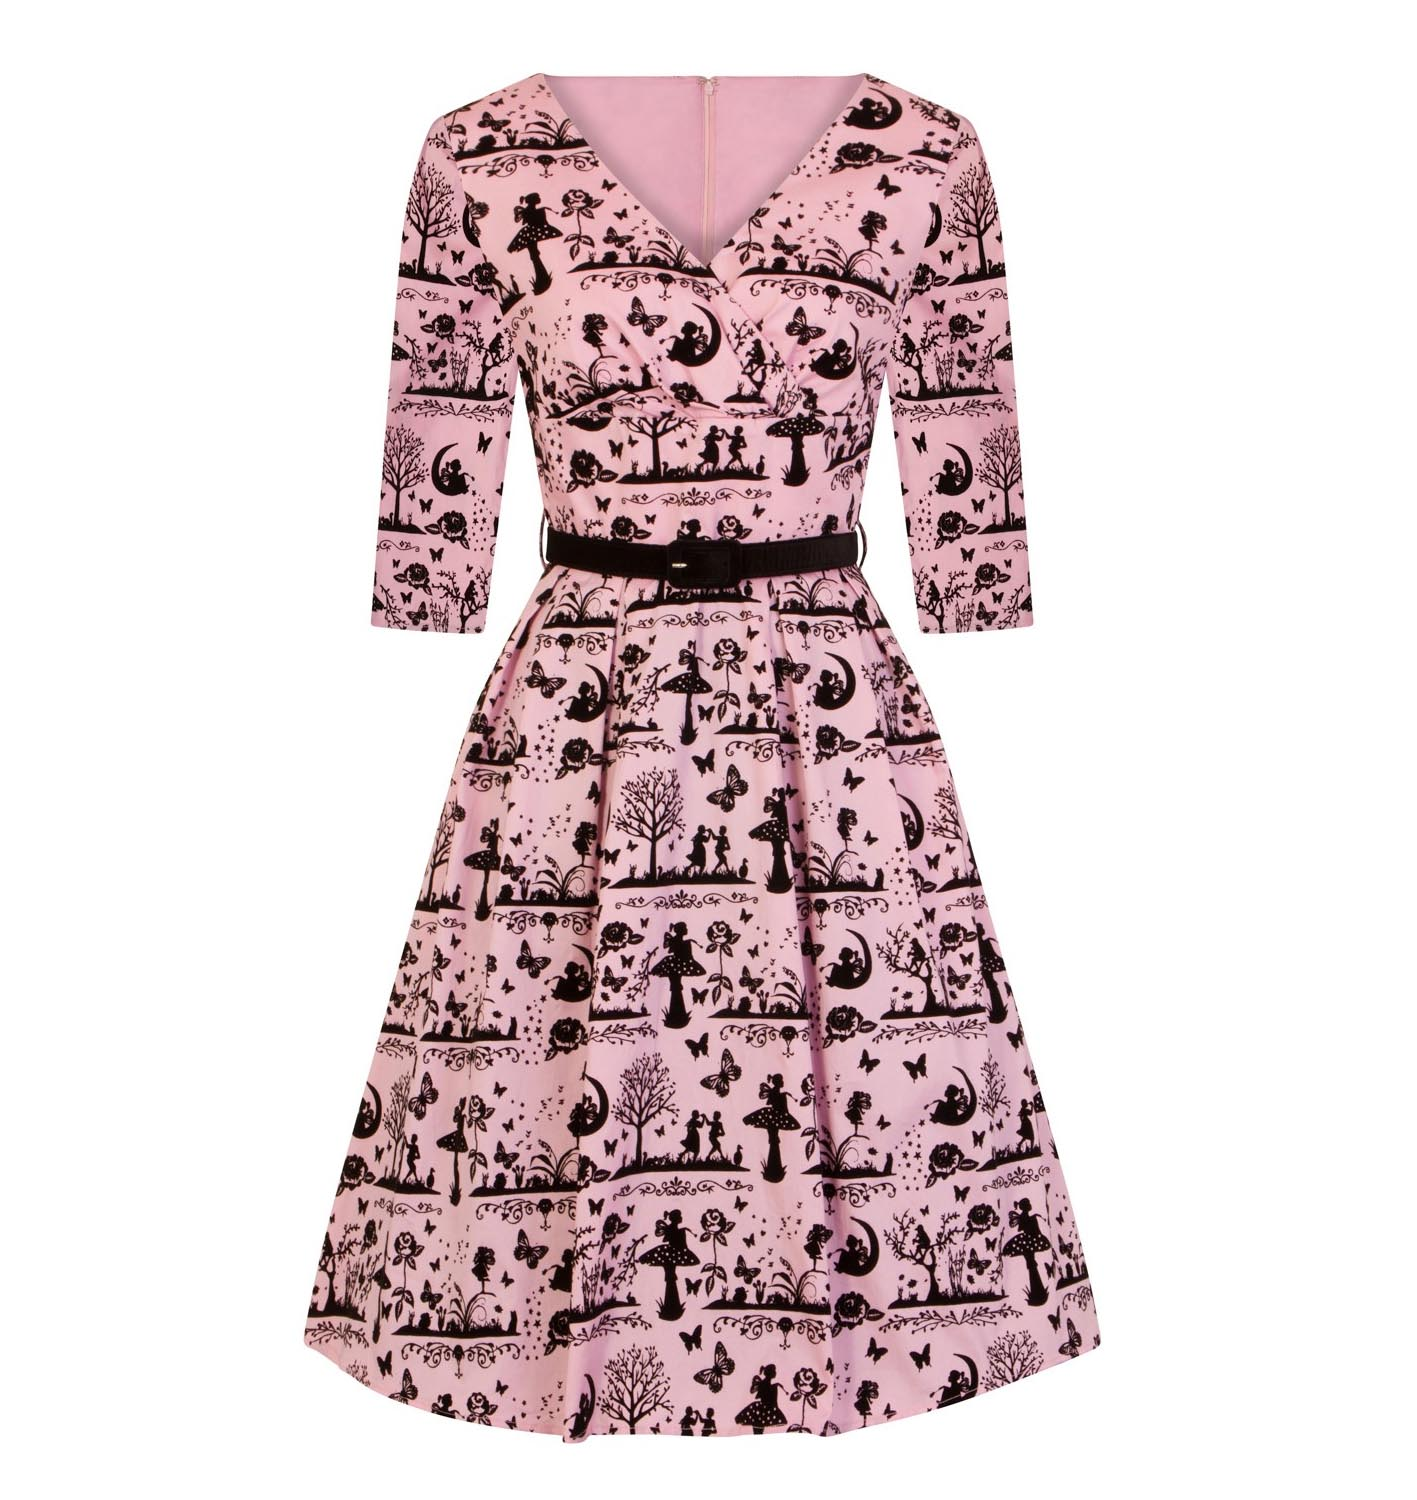 Hell-Bunny-40s-50s-Pin-Up-Dress-Fairy-Butterfly-ANDERSON-Black-Pink-All-Sizes thumbnail 15